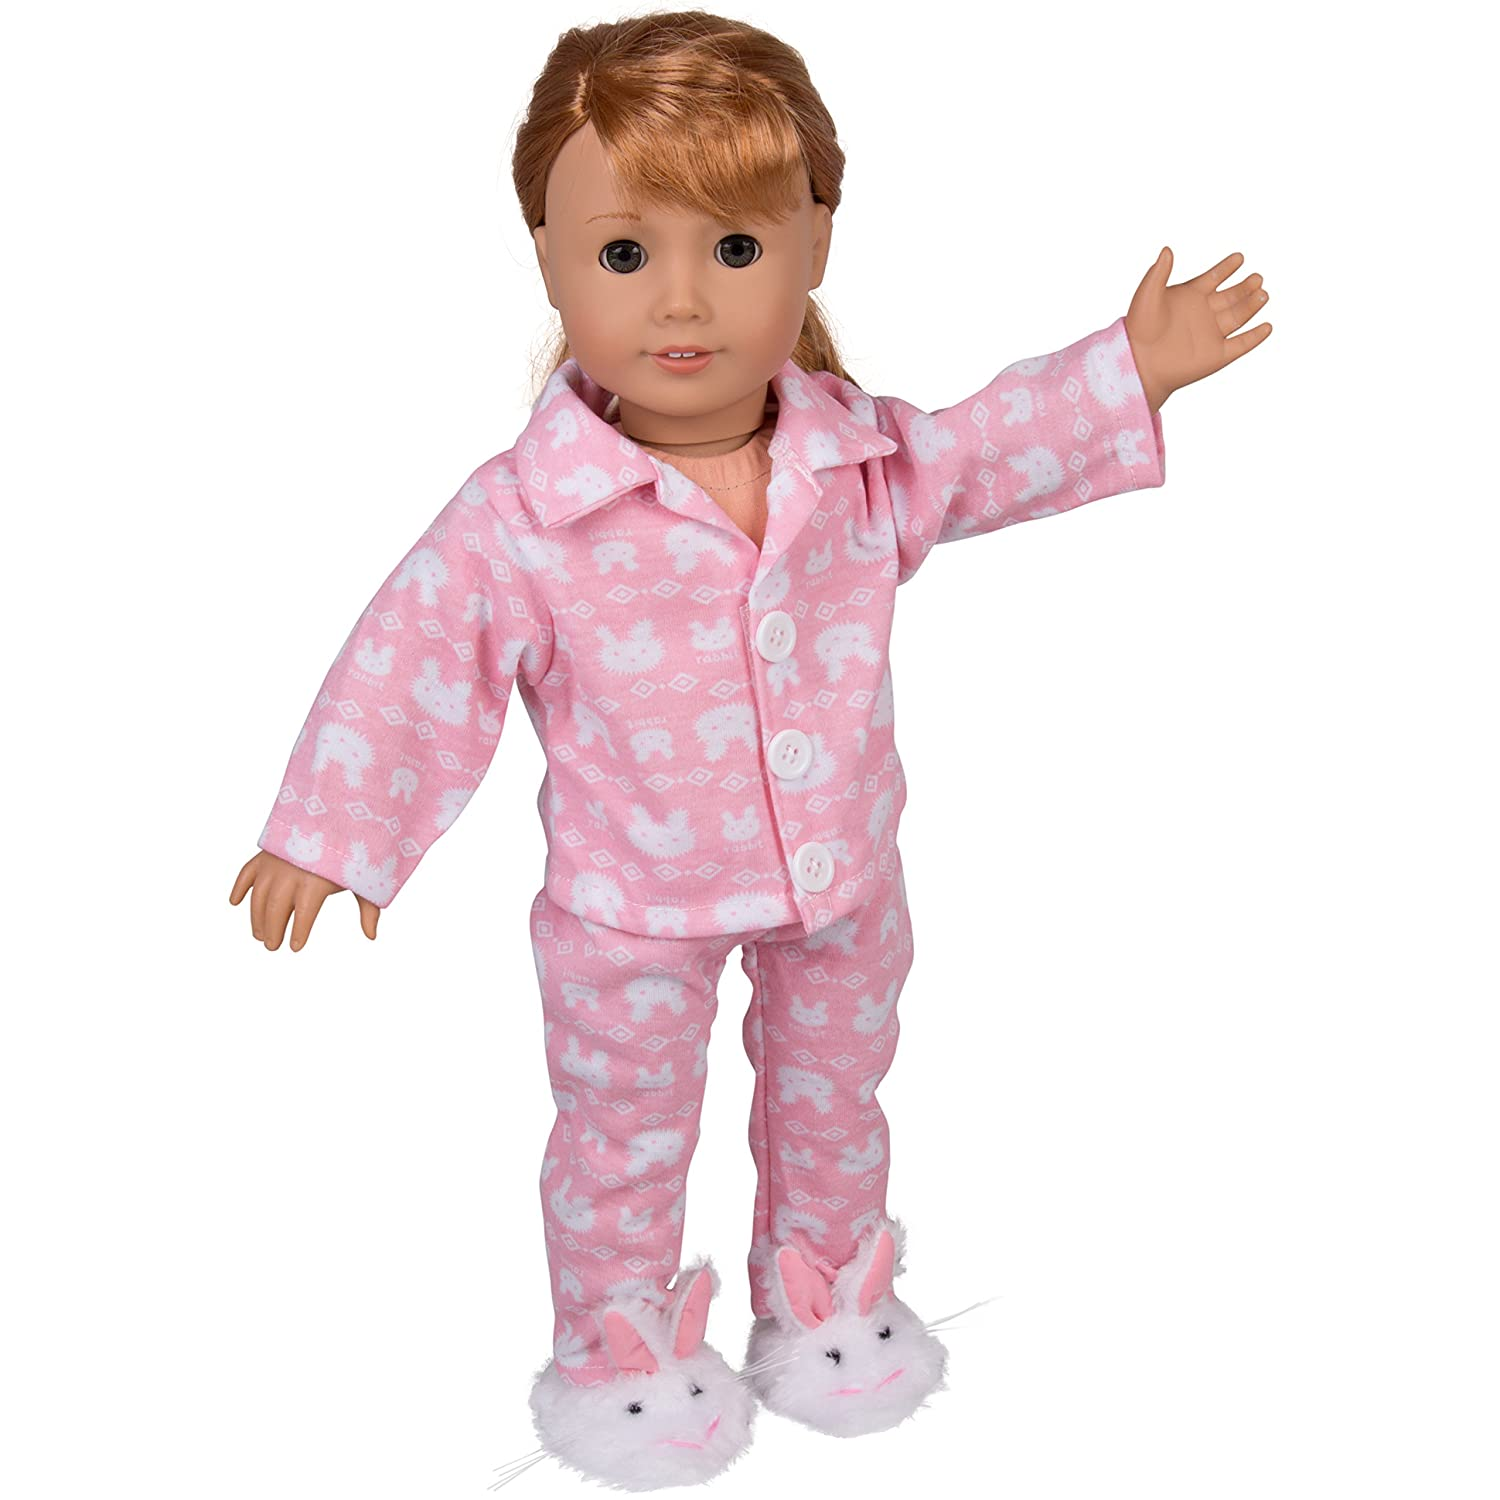 Doll Pajamas for 18' Dolls: 3 Piece Outfit Including Bunny Shirt, Pants, and Bunny Slippers Ride Along Dolly